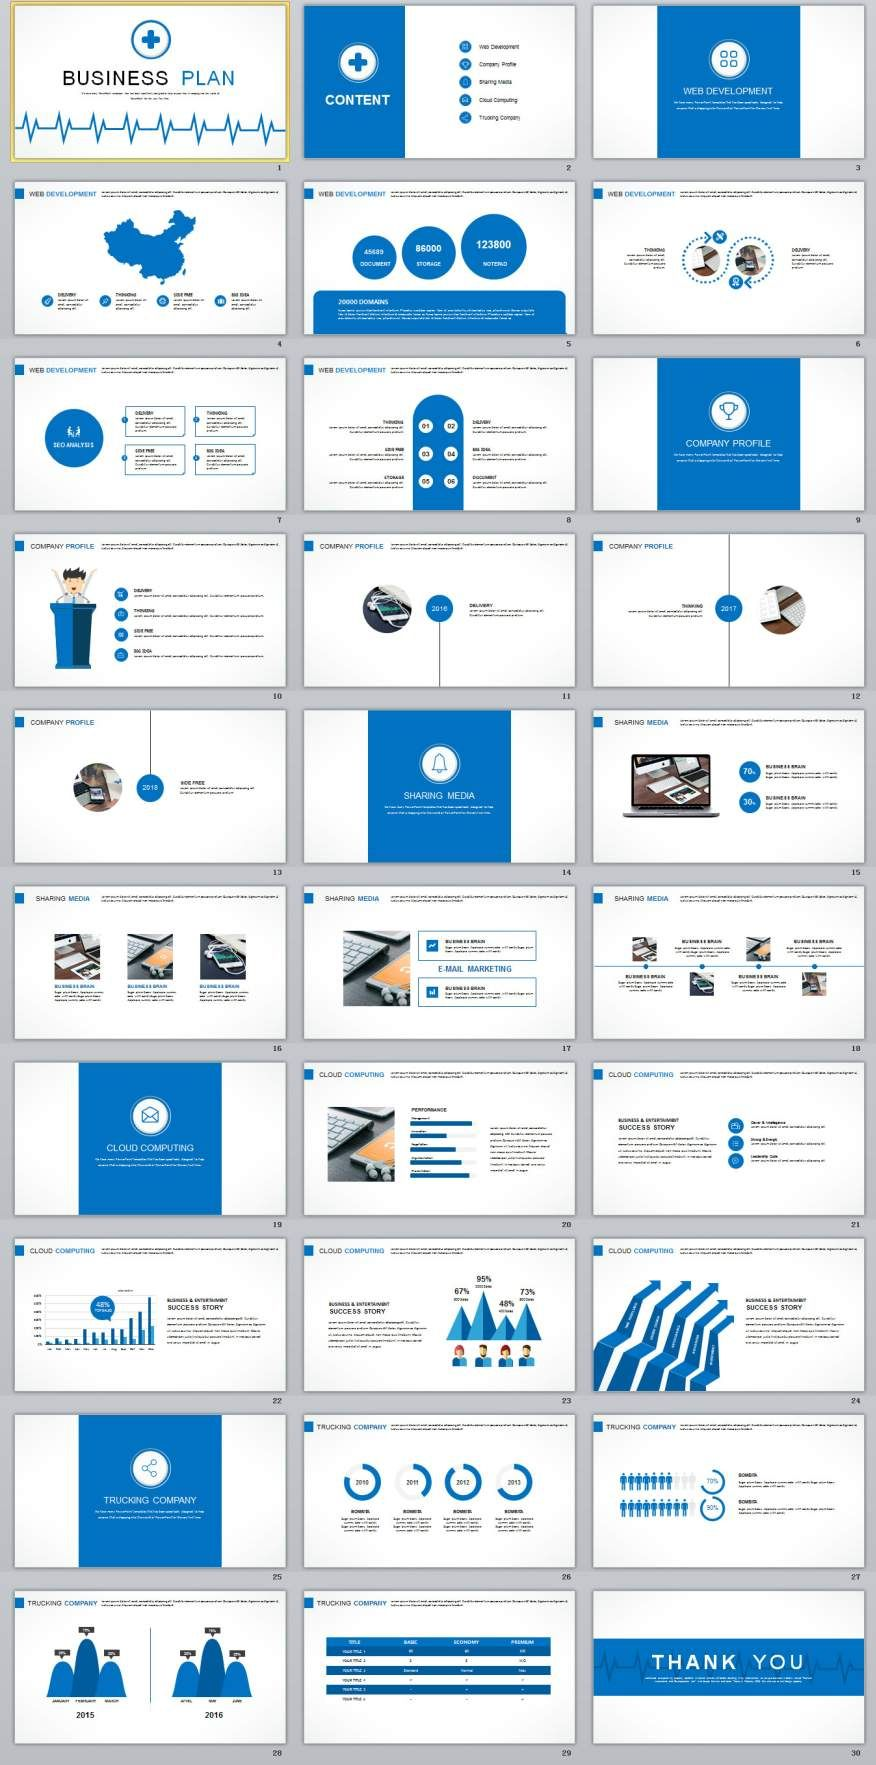 30+ Best Business plan PowerPoint templates Business